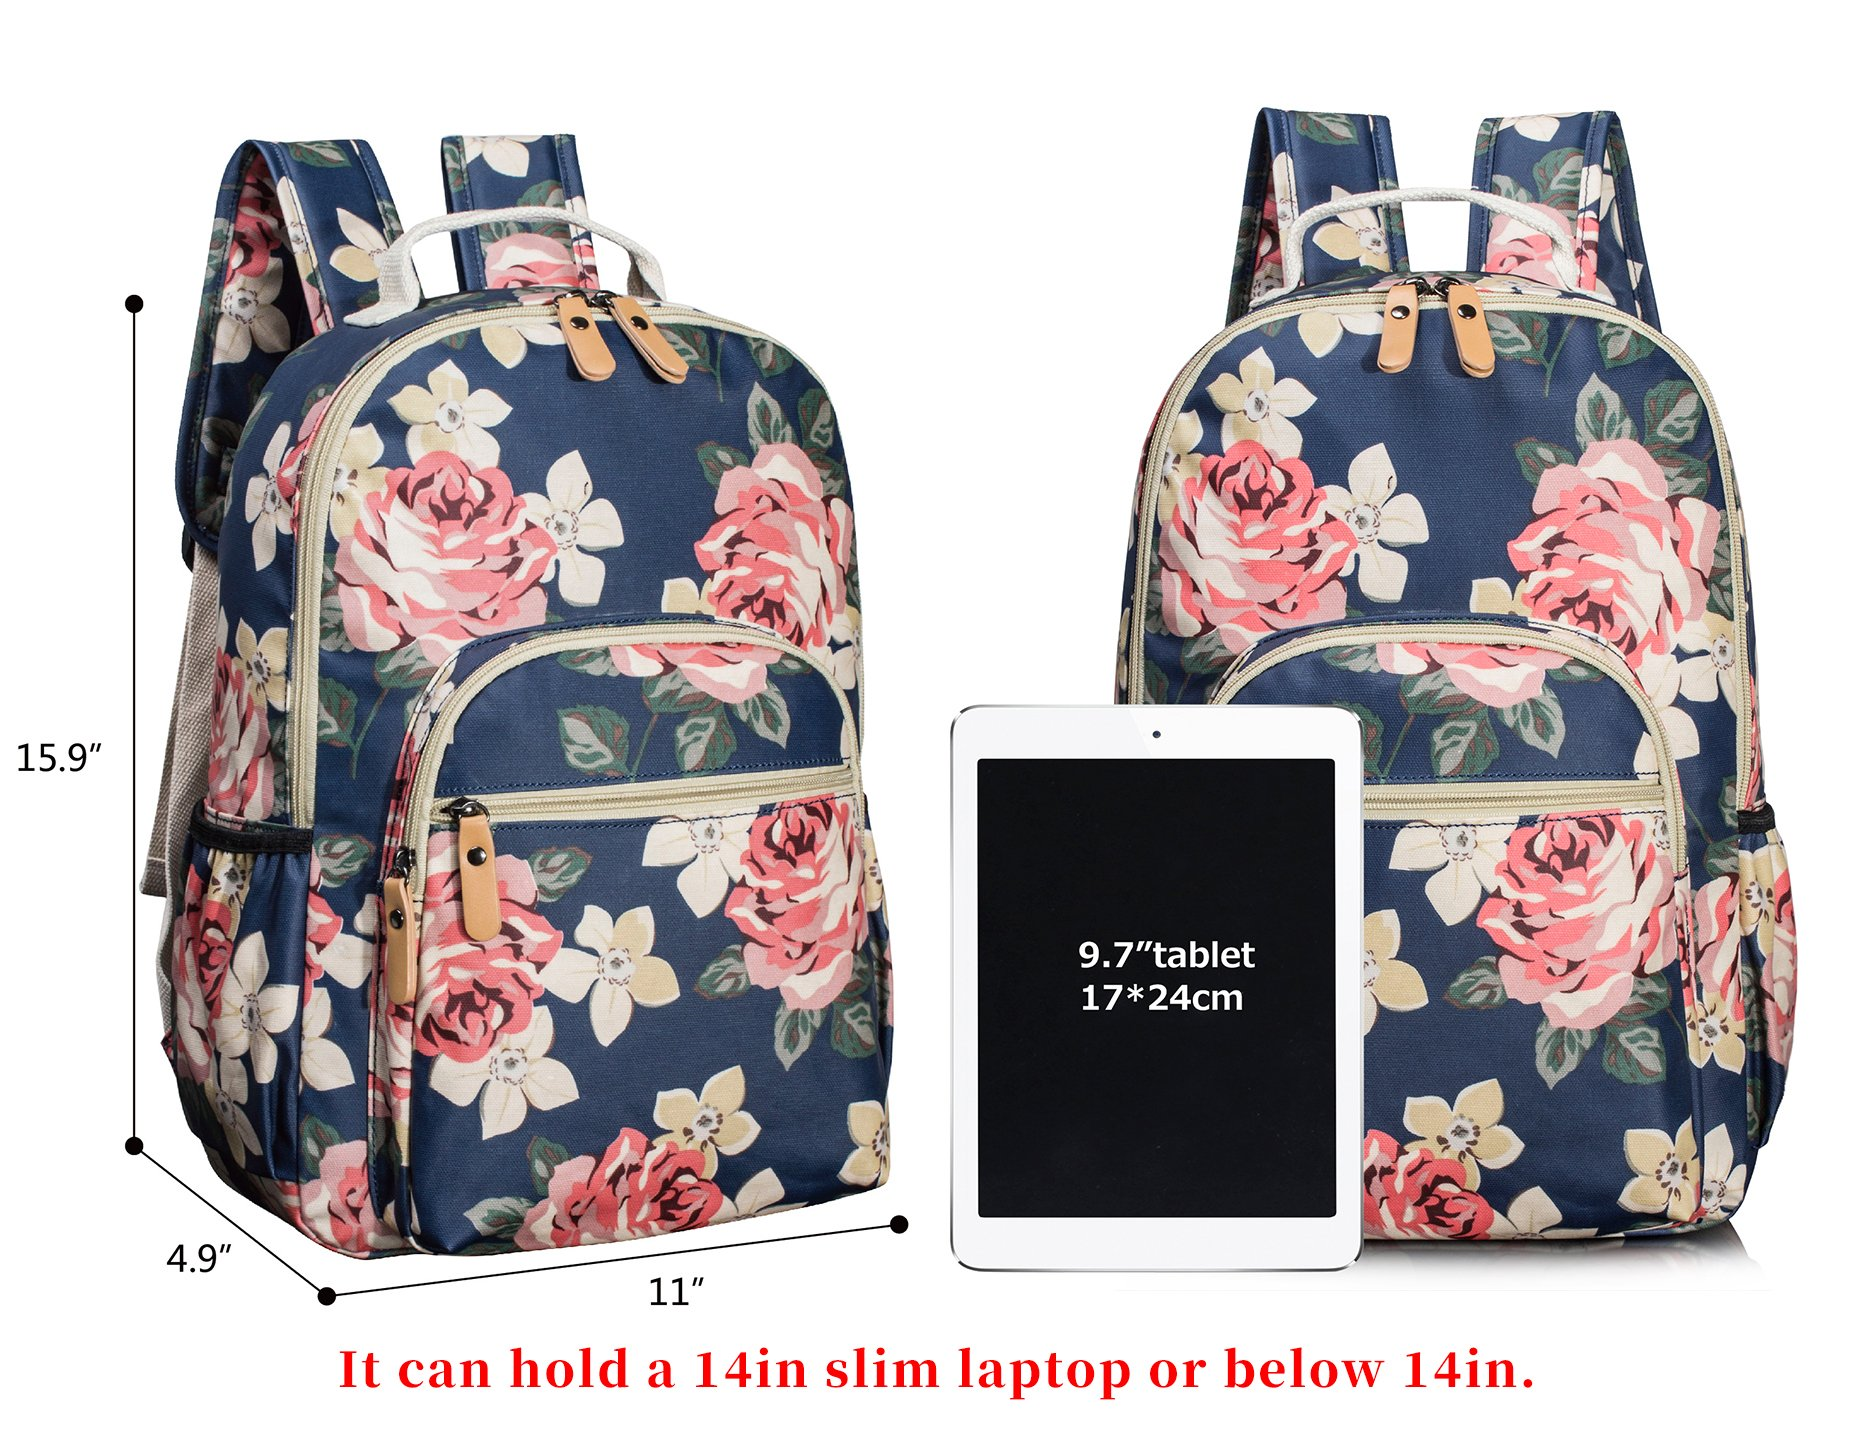 Leaper Floral Water-resistant Laptop Backpack College Bags Daypack Dark Blue by Leaper (Image #2)